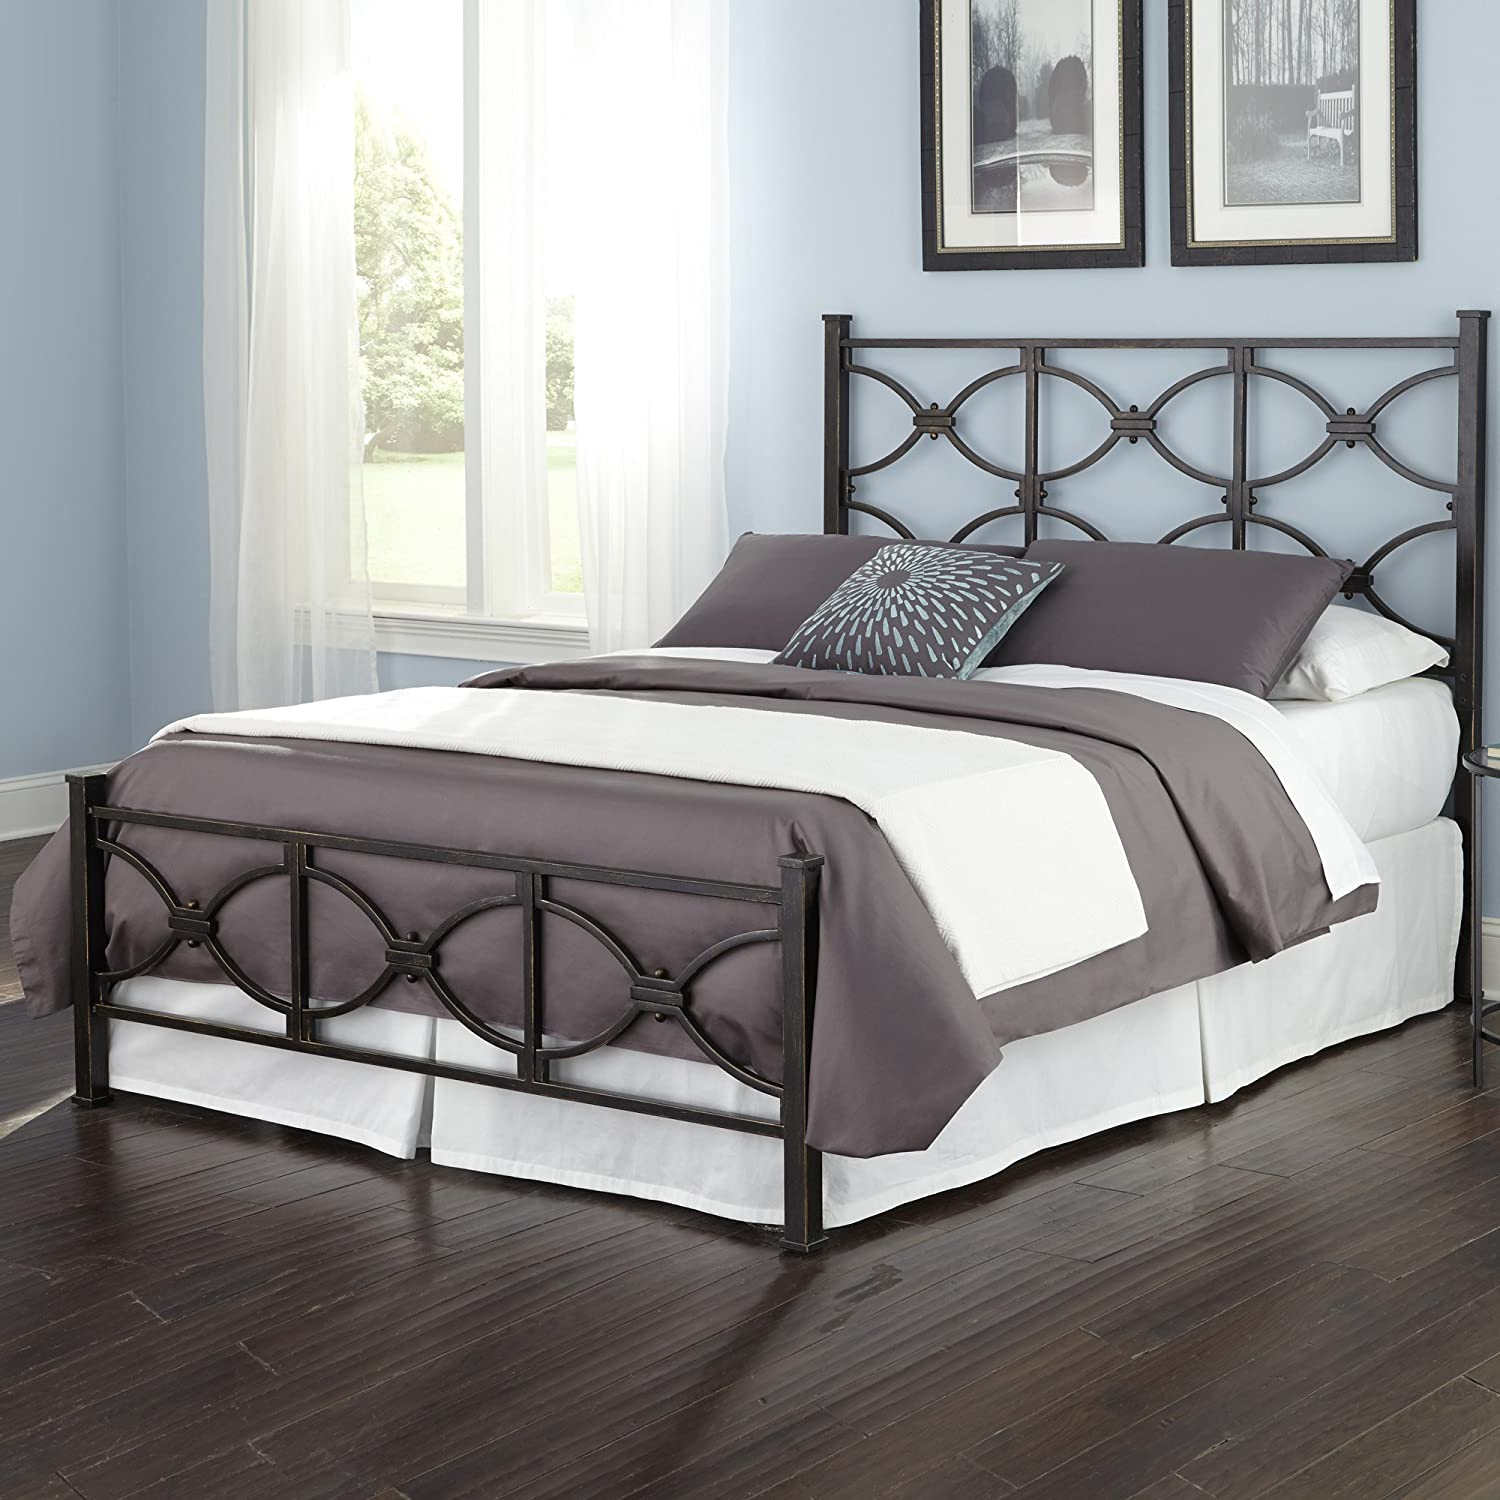 Amazoncom Marlo Complete Bed With Metal Panels And Squared Finial